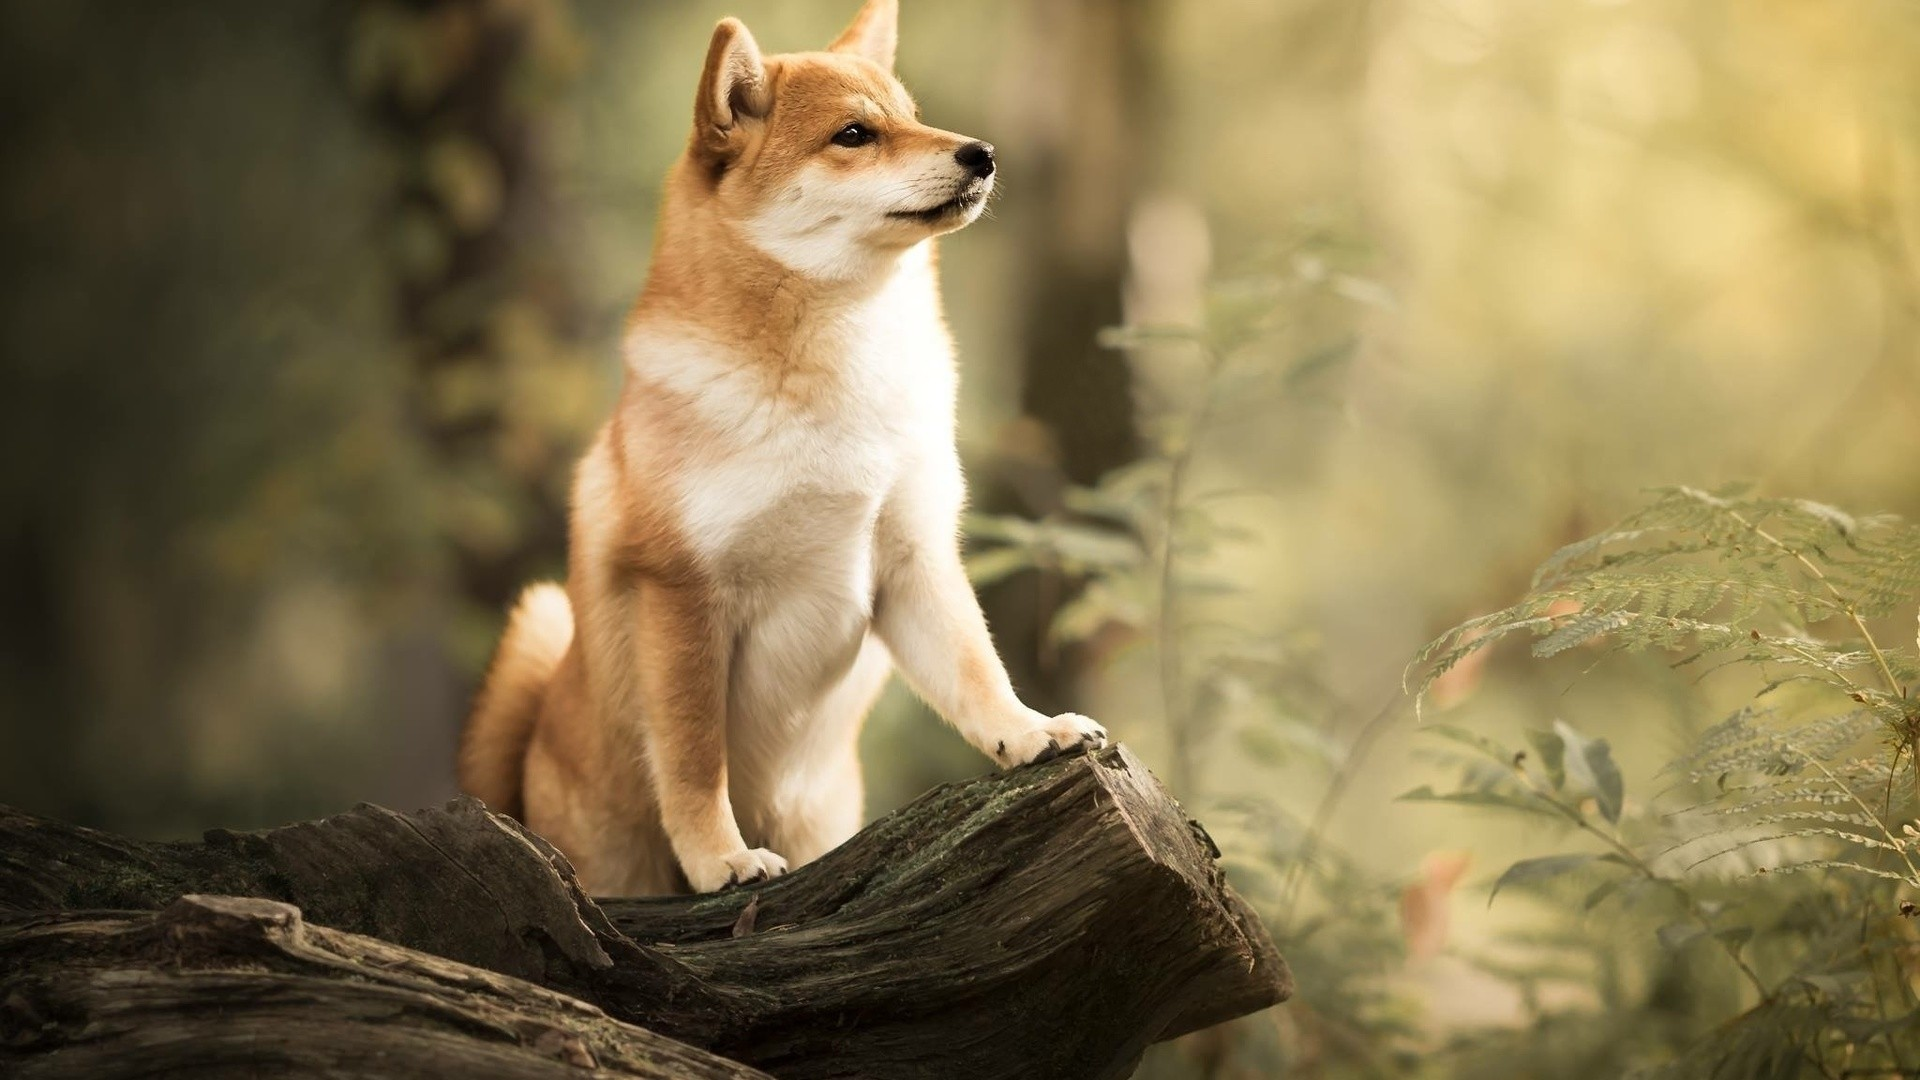 Shiba Inu Wallpaper For Pc